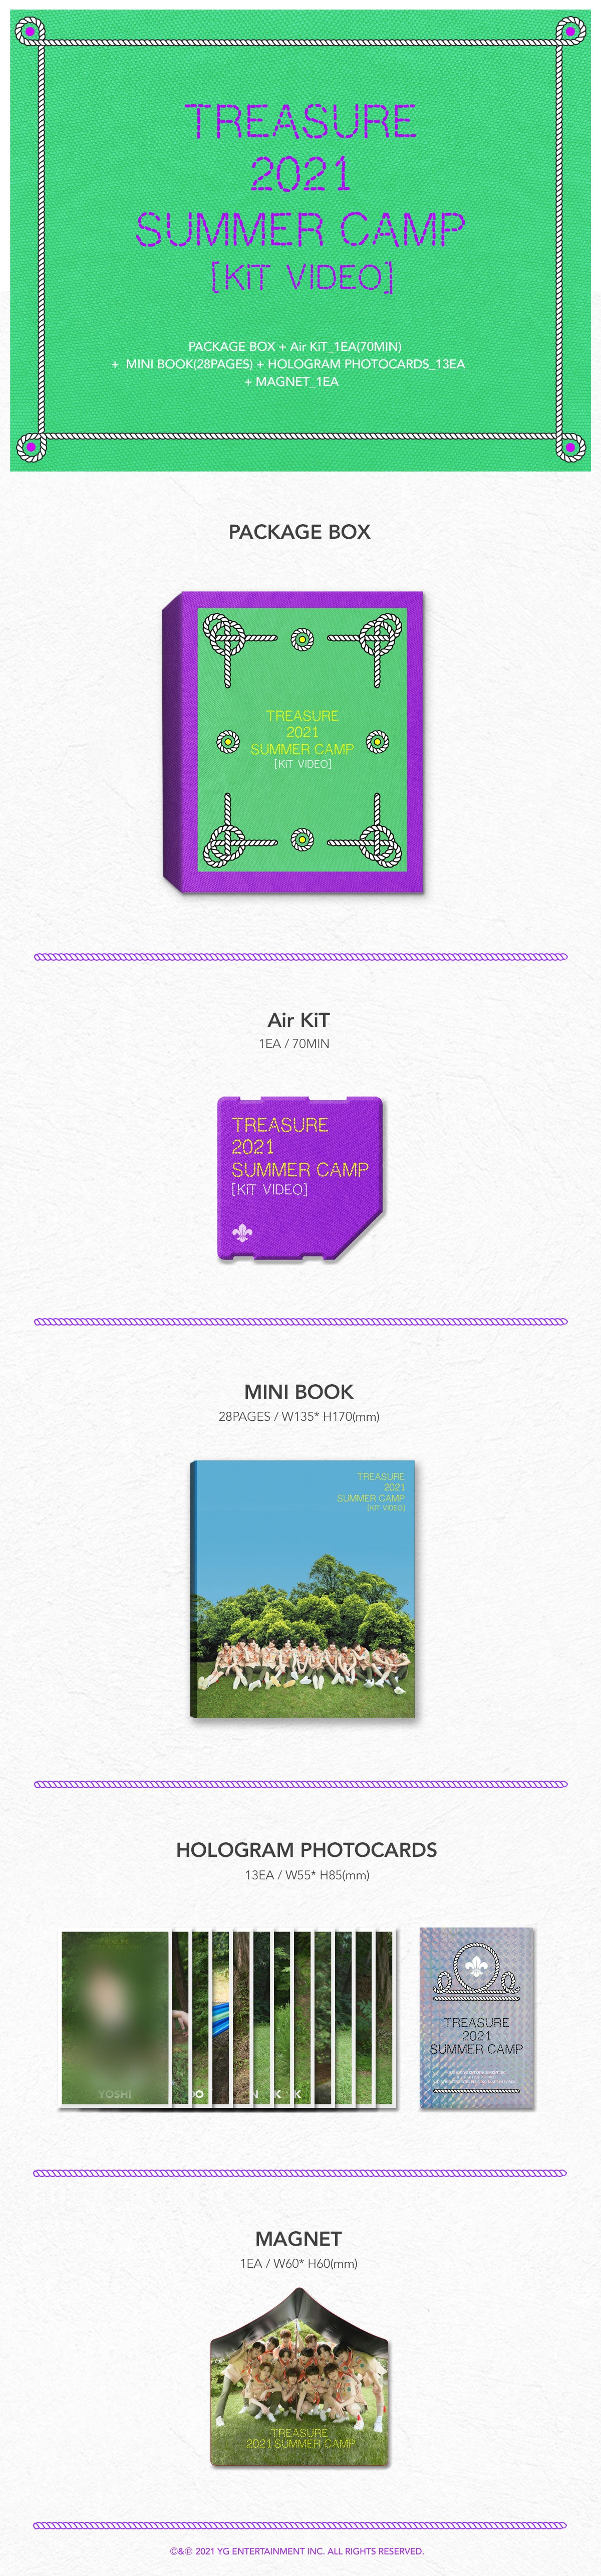 PREORDER TREASURE 2021 SUMMER CAMP KiT VIDEO Infographic